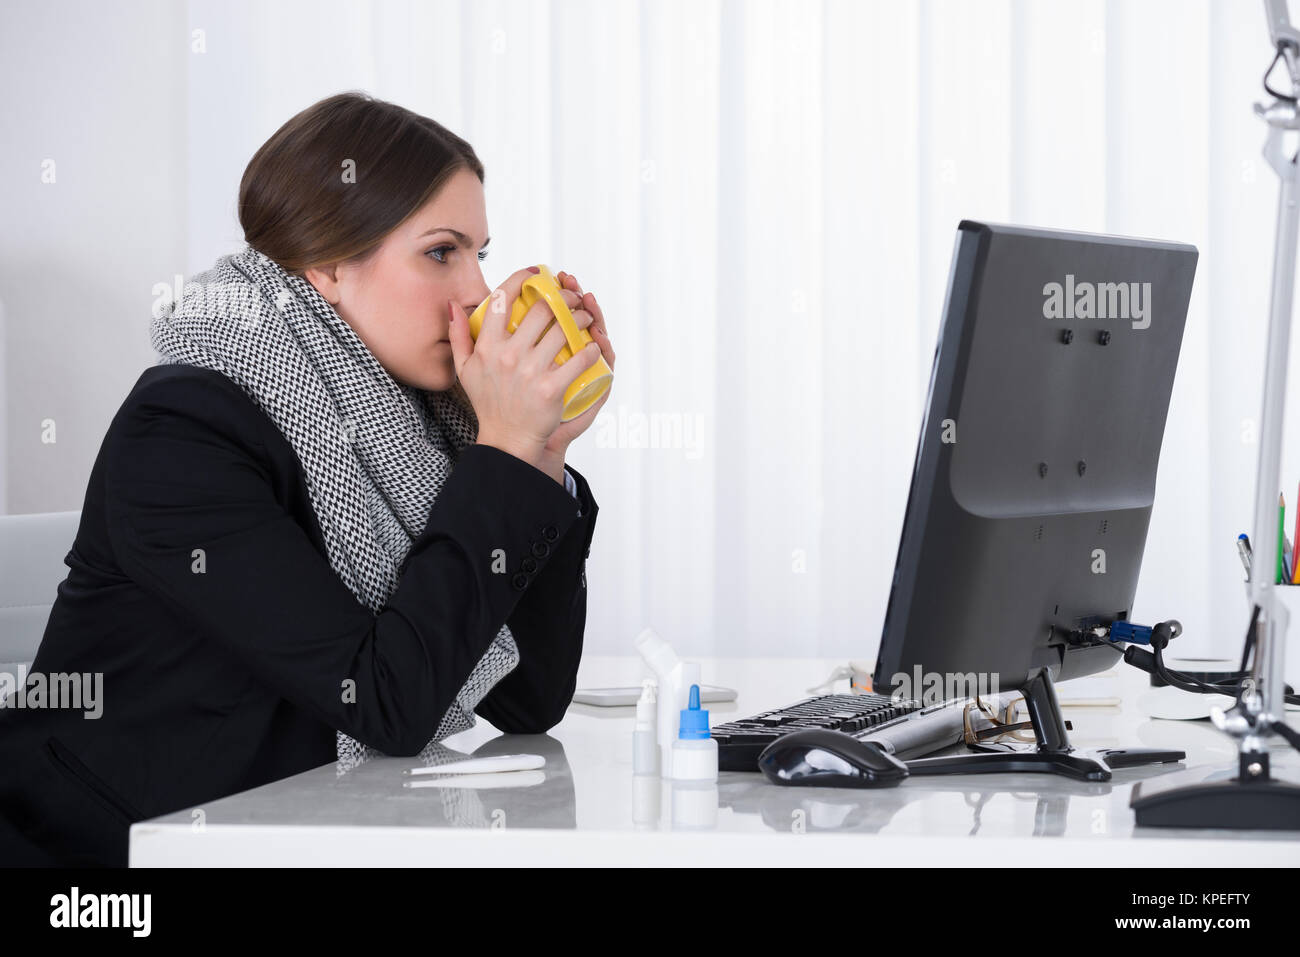 Businesswoman Drinking With Mug At Desk - Stock Image